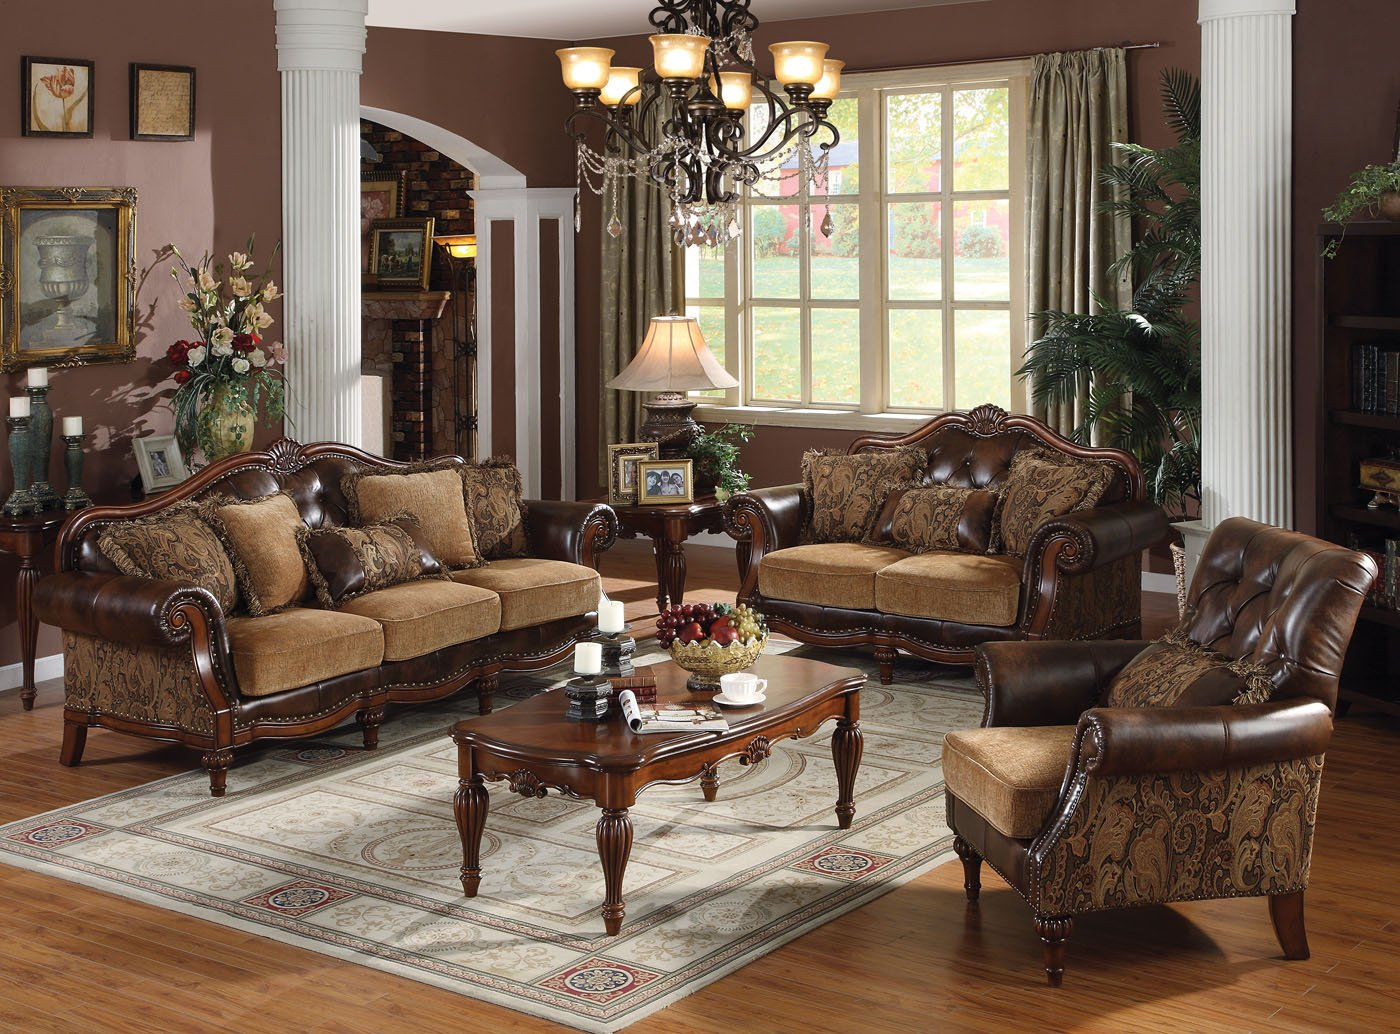 Best Luxurious Sofa Sets Reviews for Living room of Villa, Penthouse & Royal Homes